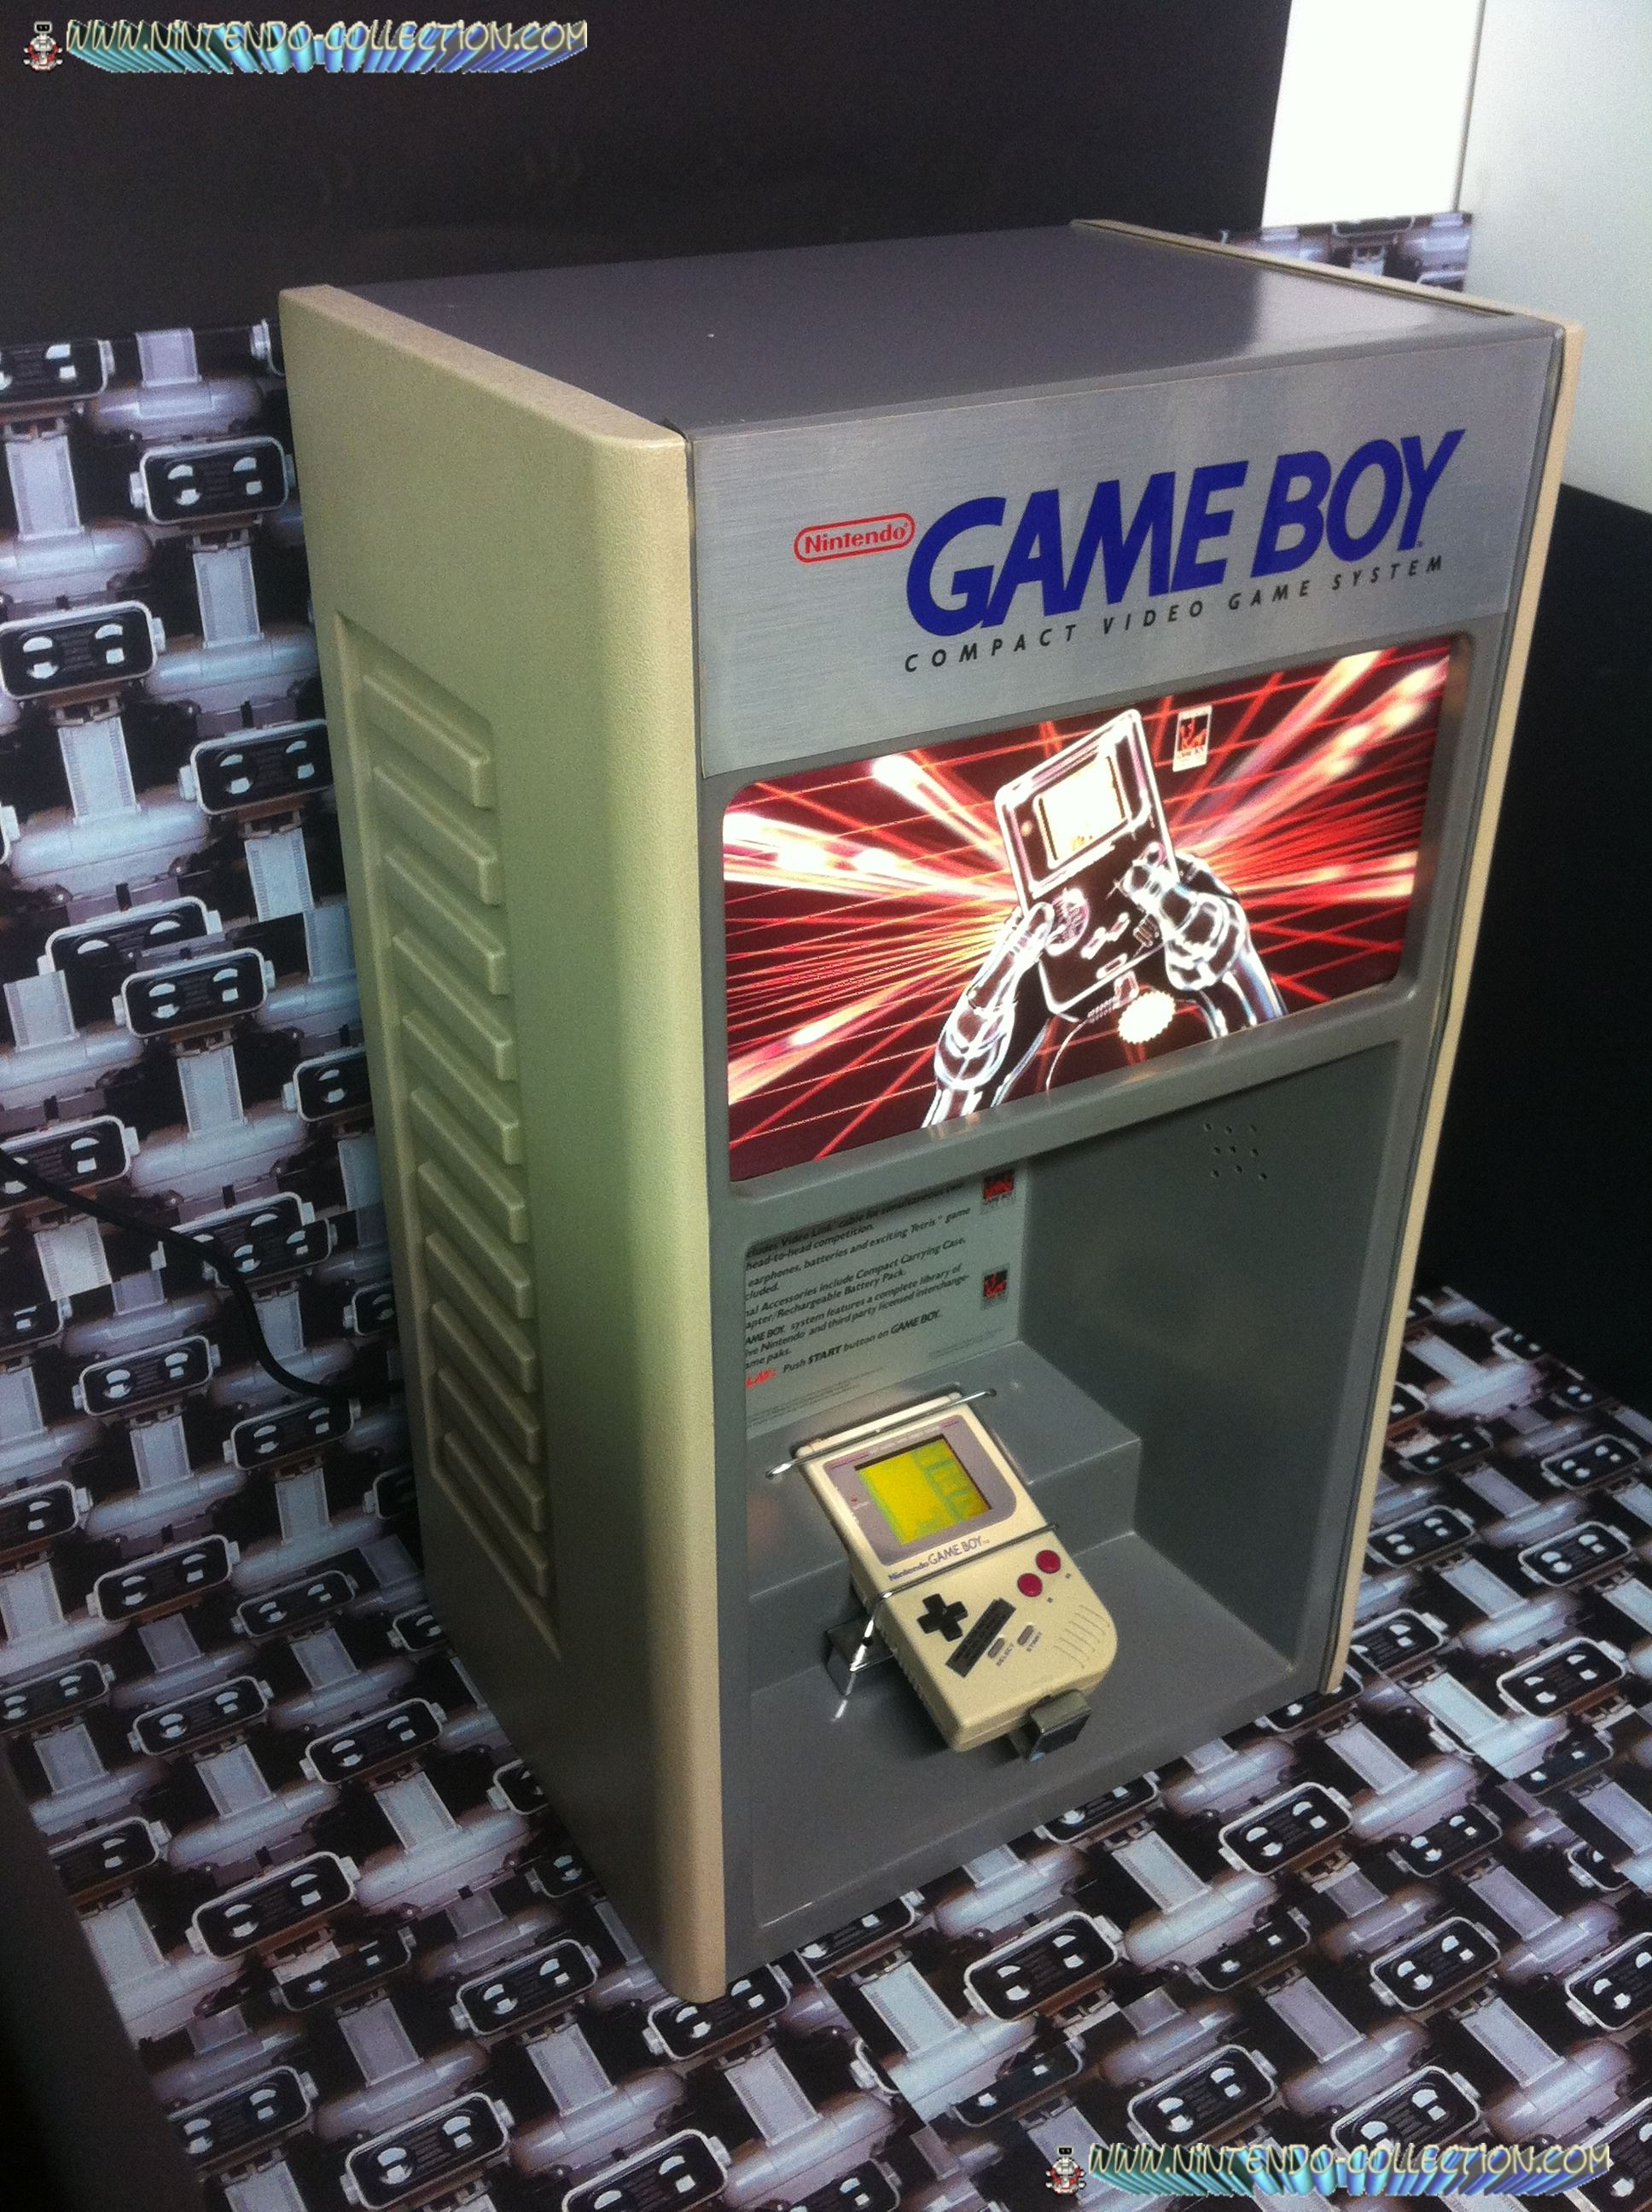 www.nintendo-collection.com - Borne demonstration Gameboy Demo Kiosk - 1